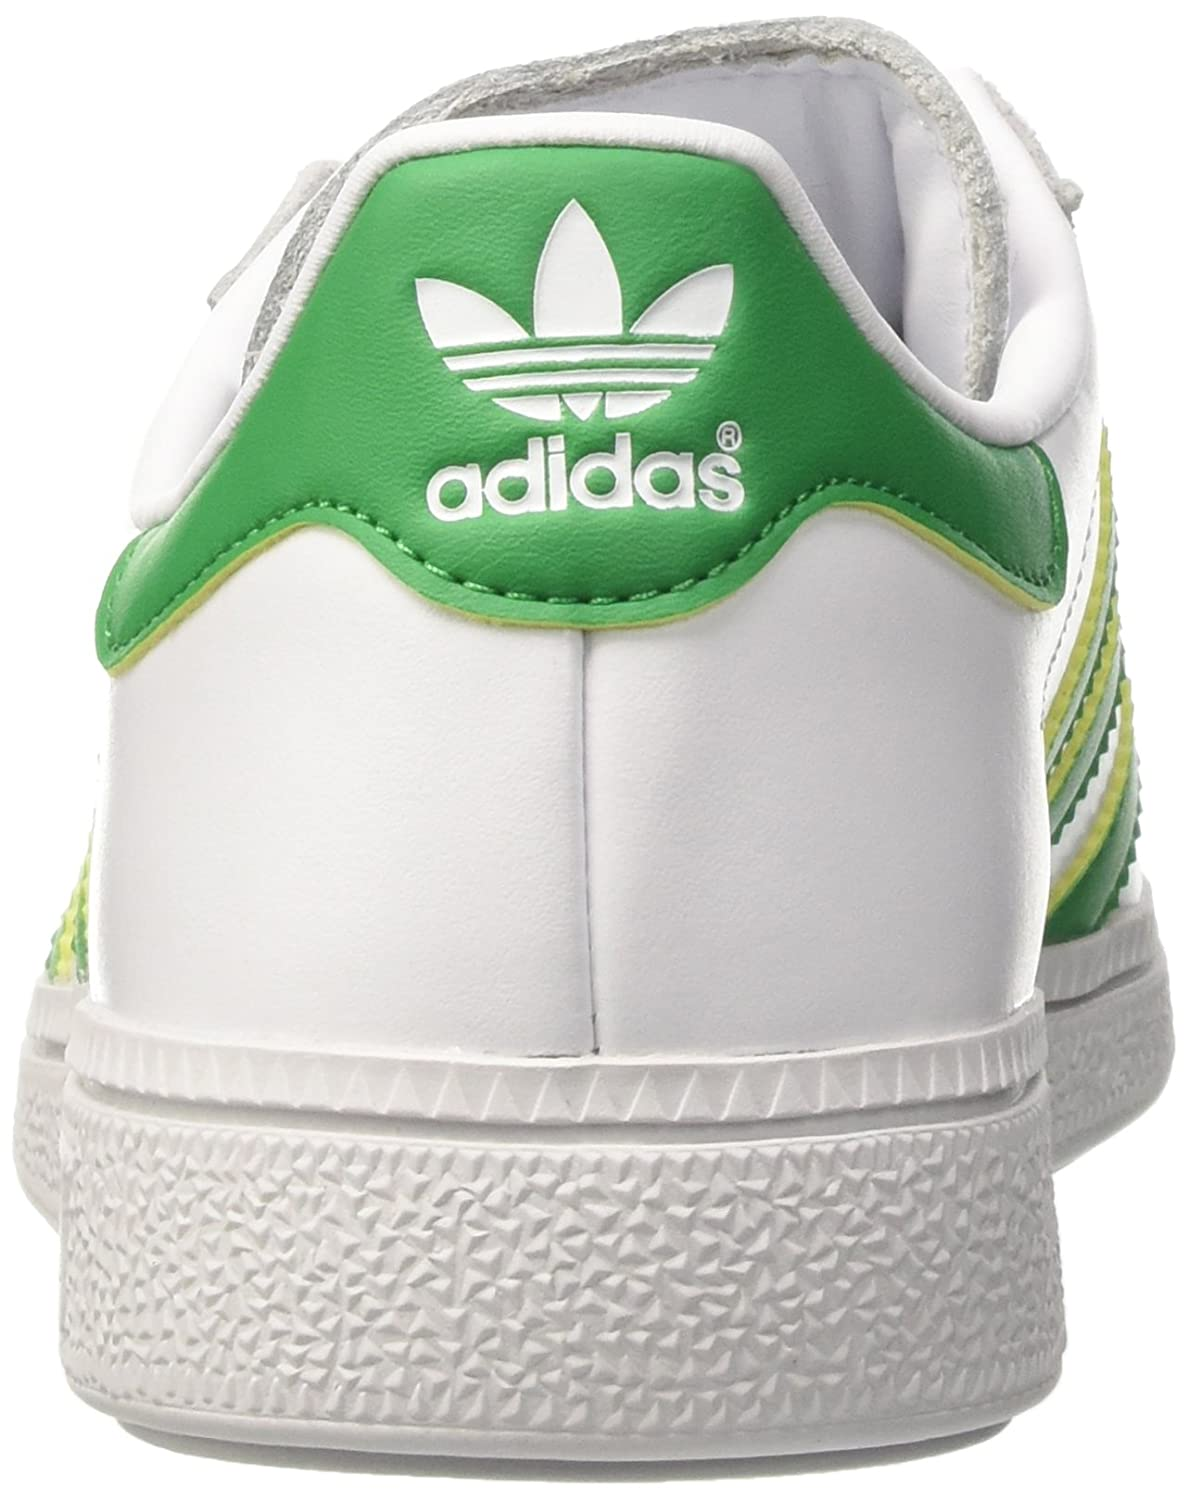 new style 39242 4a4c0 adidas Munchen, Basket Mode Homme Amazon.fr Chaussures et Sa